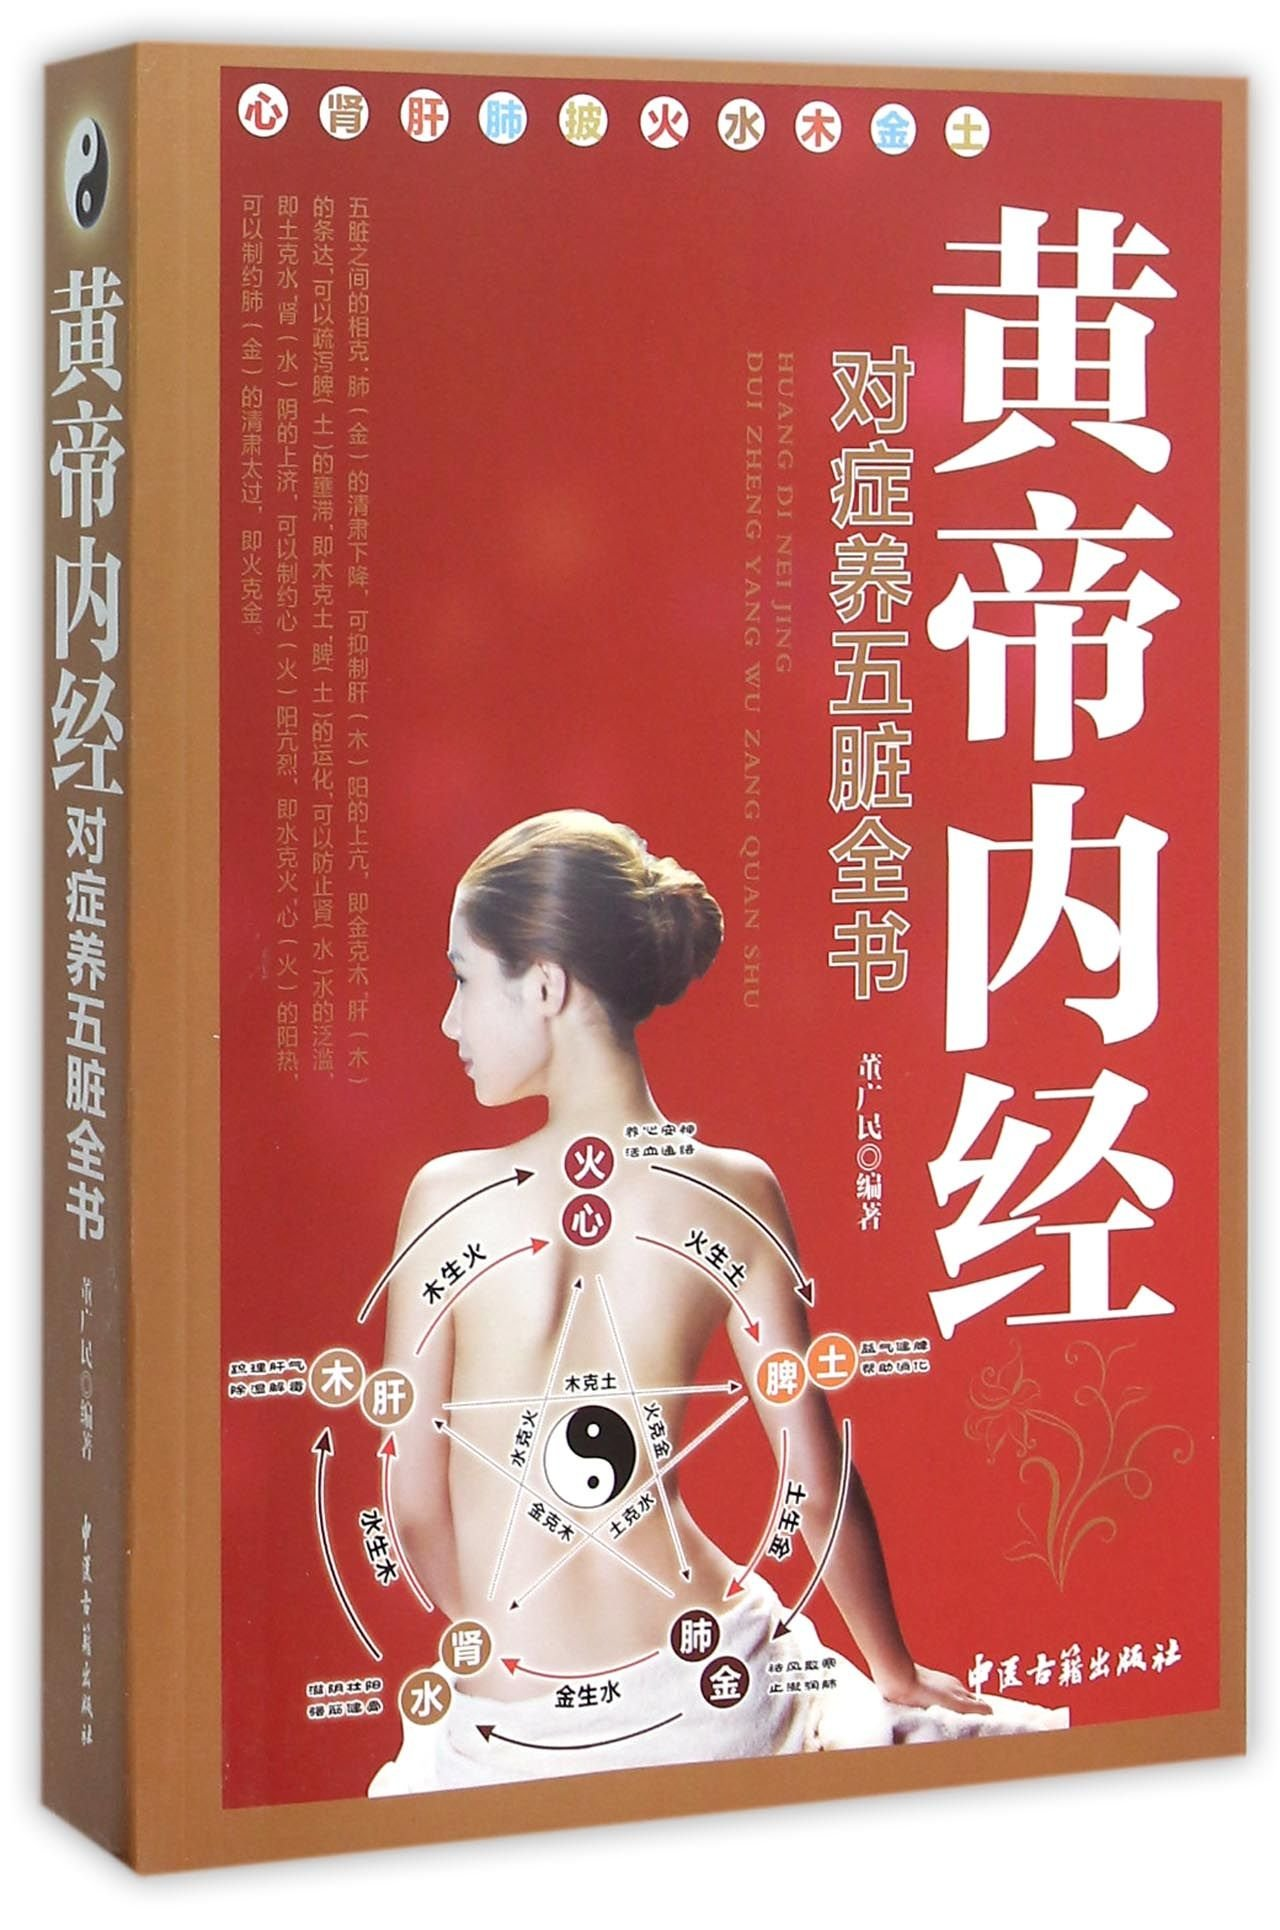 Read Online A Complete Guide to the Symptomatic Nursing of Five Internal Organs Based on Huangdi Neijing (Chinese Edition) pdf